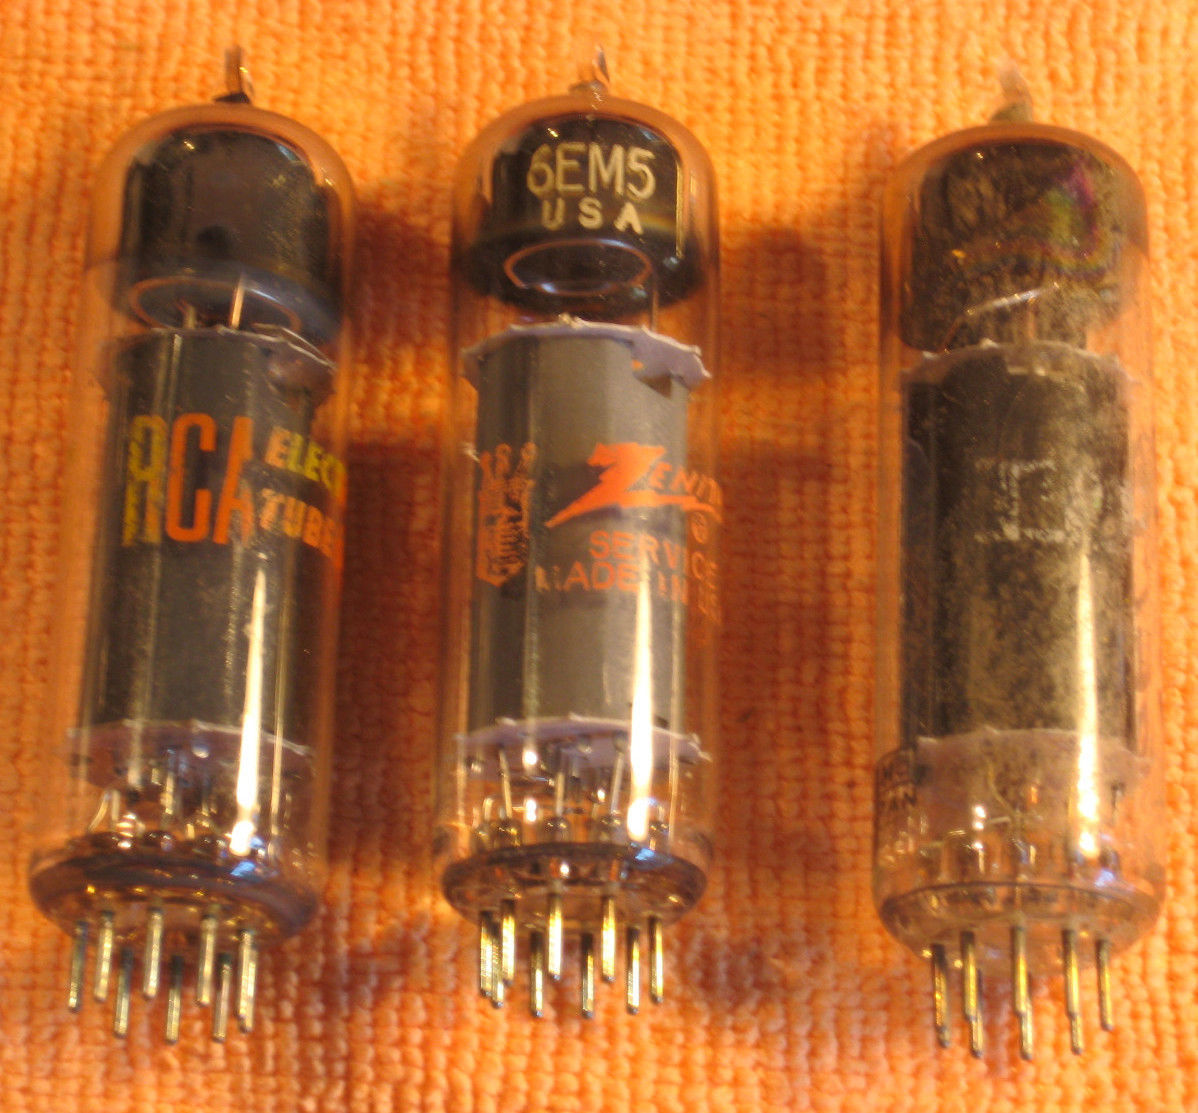 Vintage Radio Vacuum Tube (one): 6EM5 - Tested Good